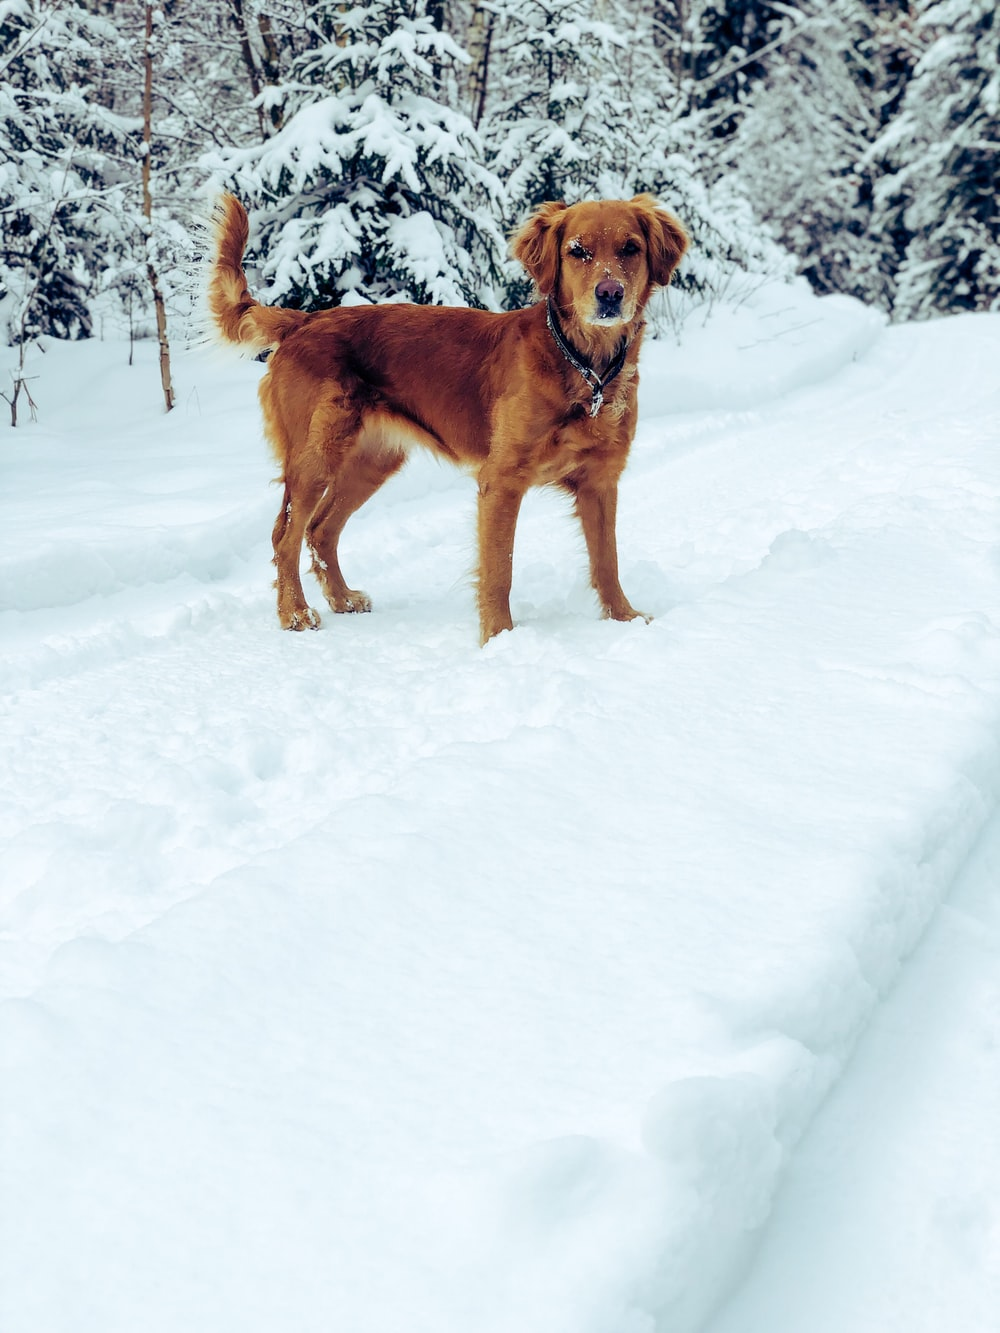 chocolate retriever in filed covered with snow